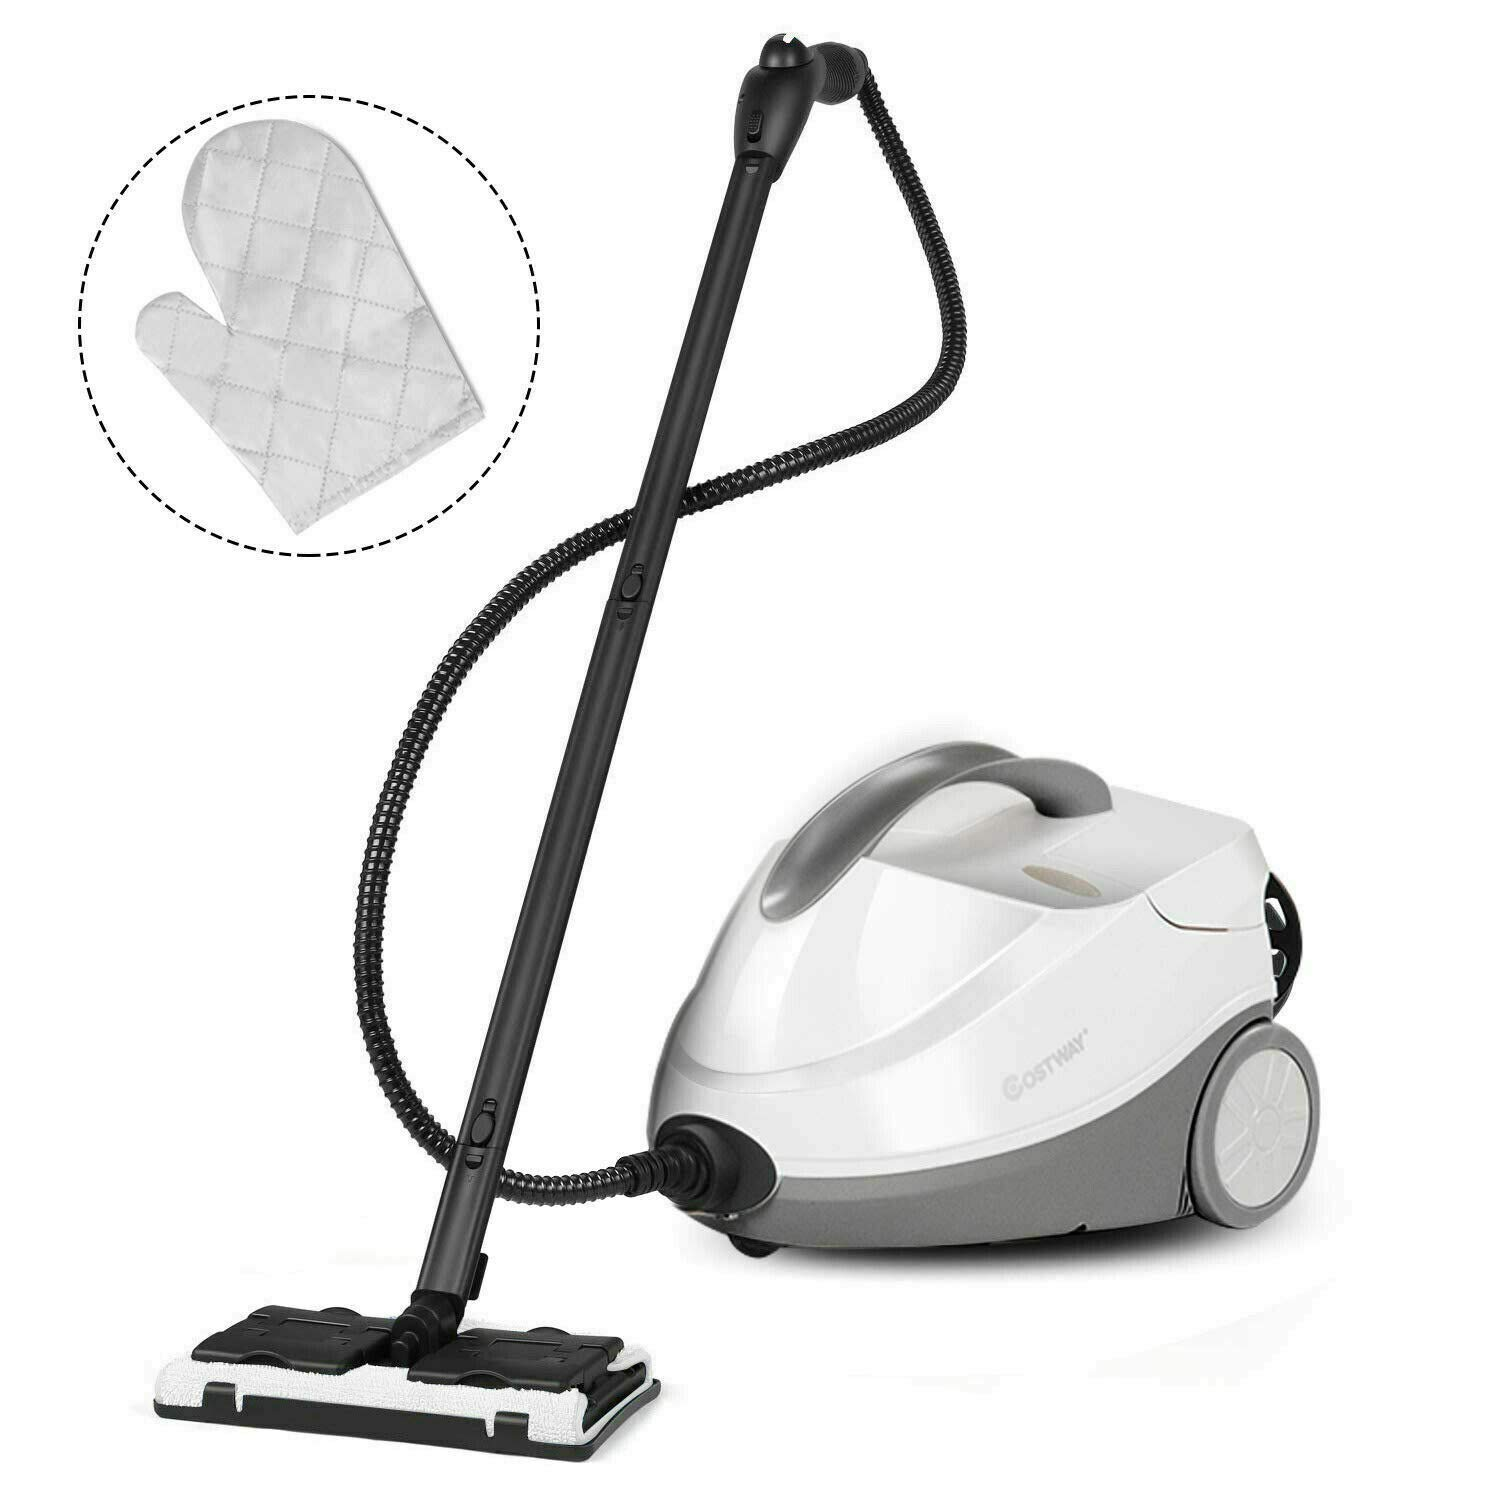 Alek...Shop Steam Cleaner System Heavy Duty Multi-Purpose Steam Cleaning 4.5 Bar 2000W. Dual Tank System, Kitchen Floor Home Hotel